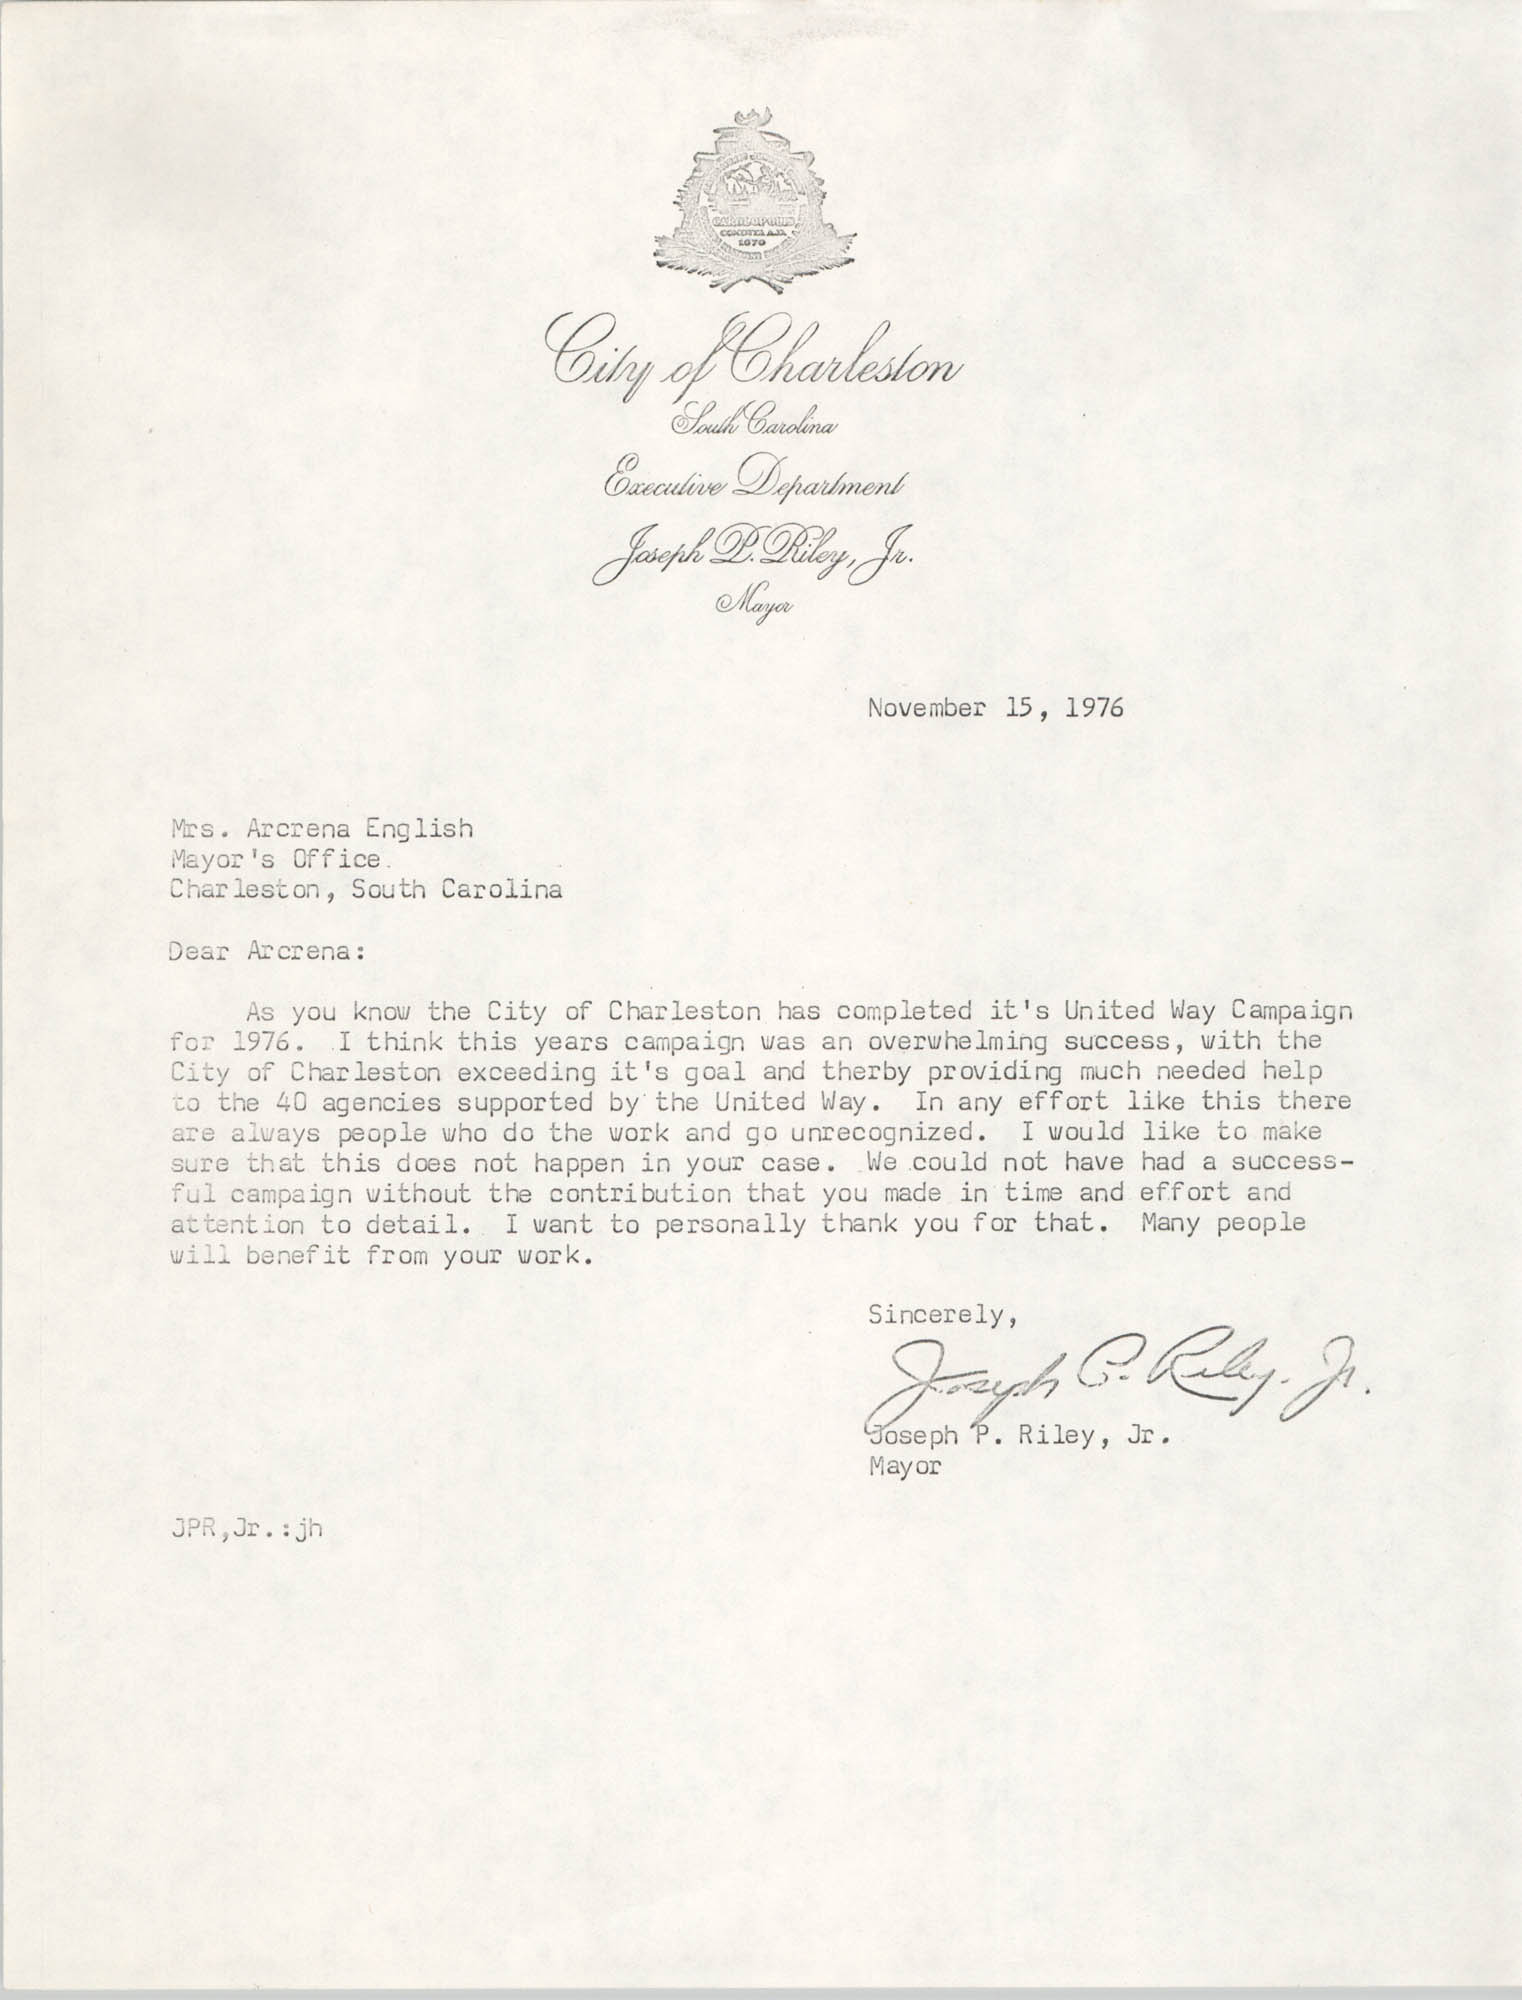 Letter from Joseph P. Riley, Jr. to Arcrena English, November 15, 1976